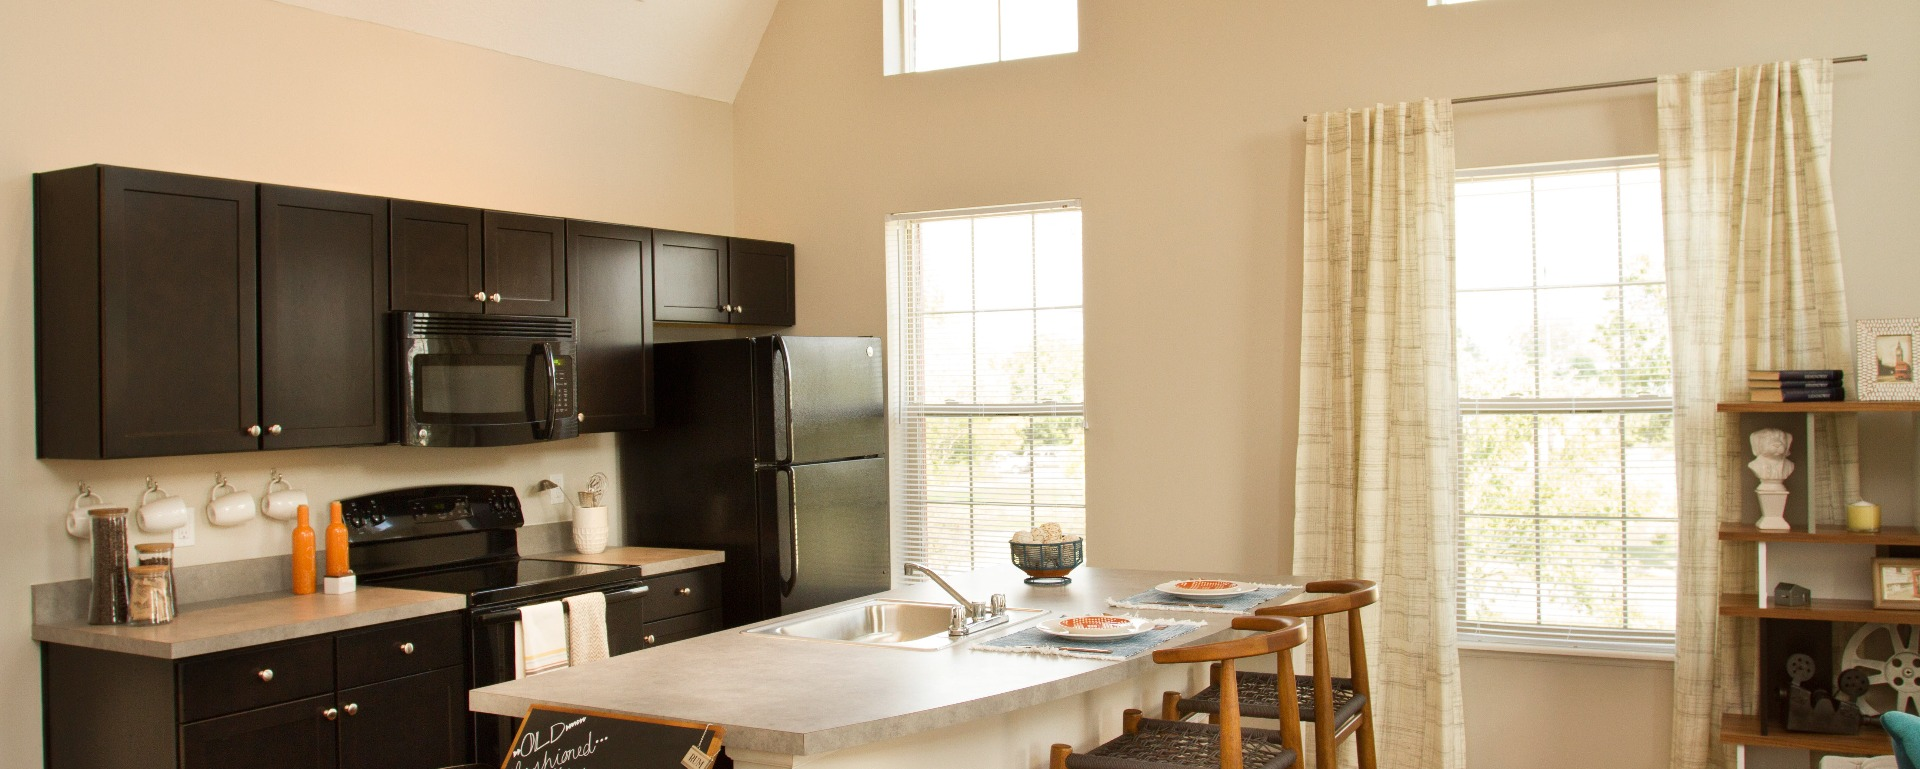 Lifestyle Communities | LC Brooklands Apartments in Hilliard